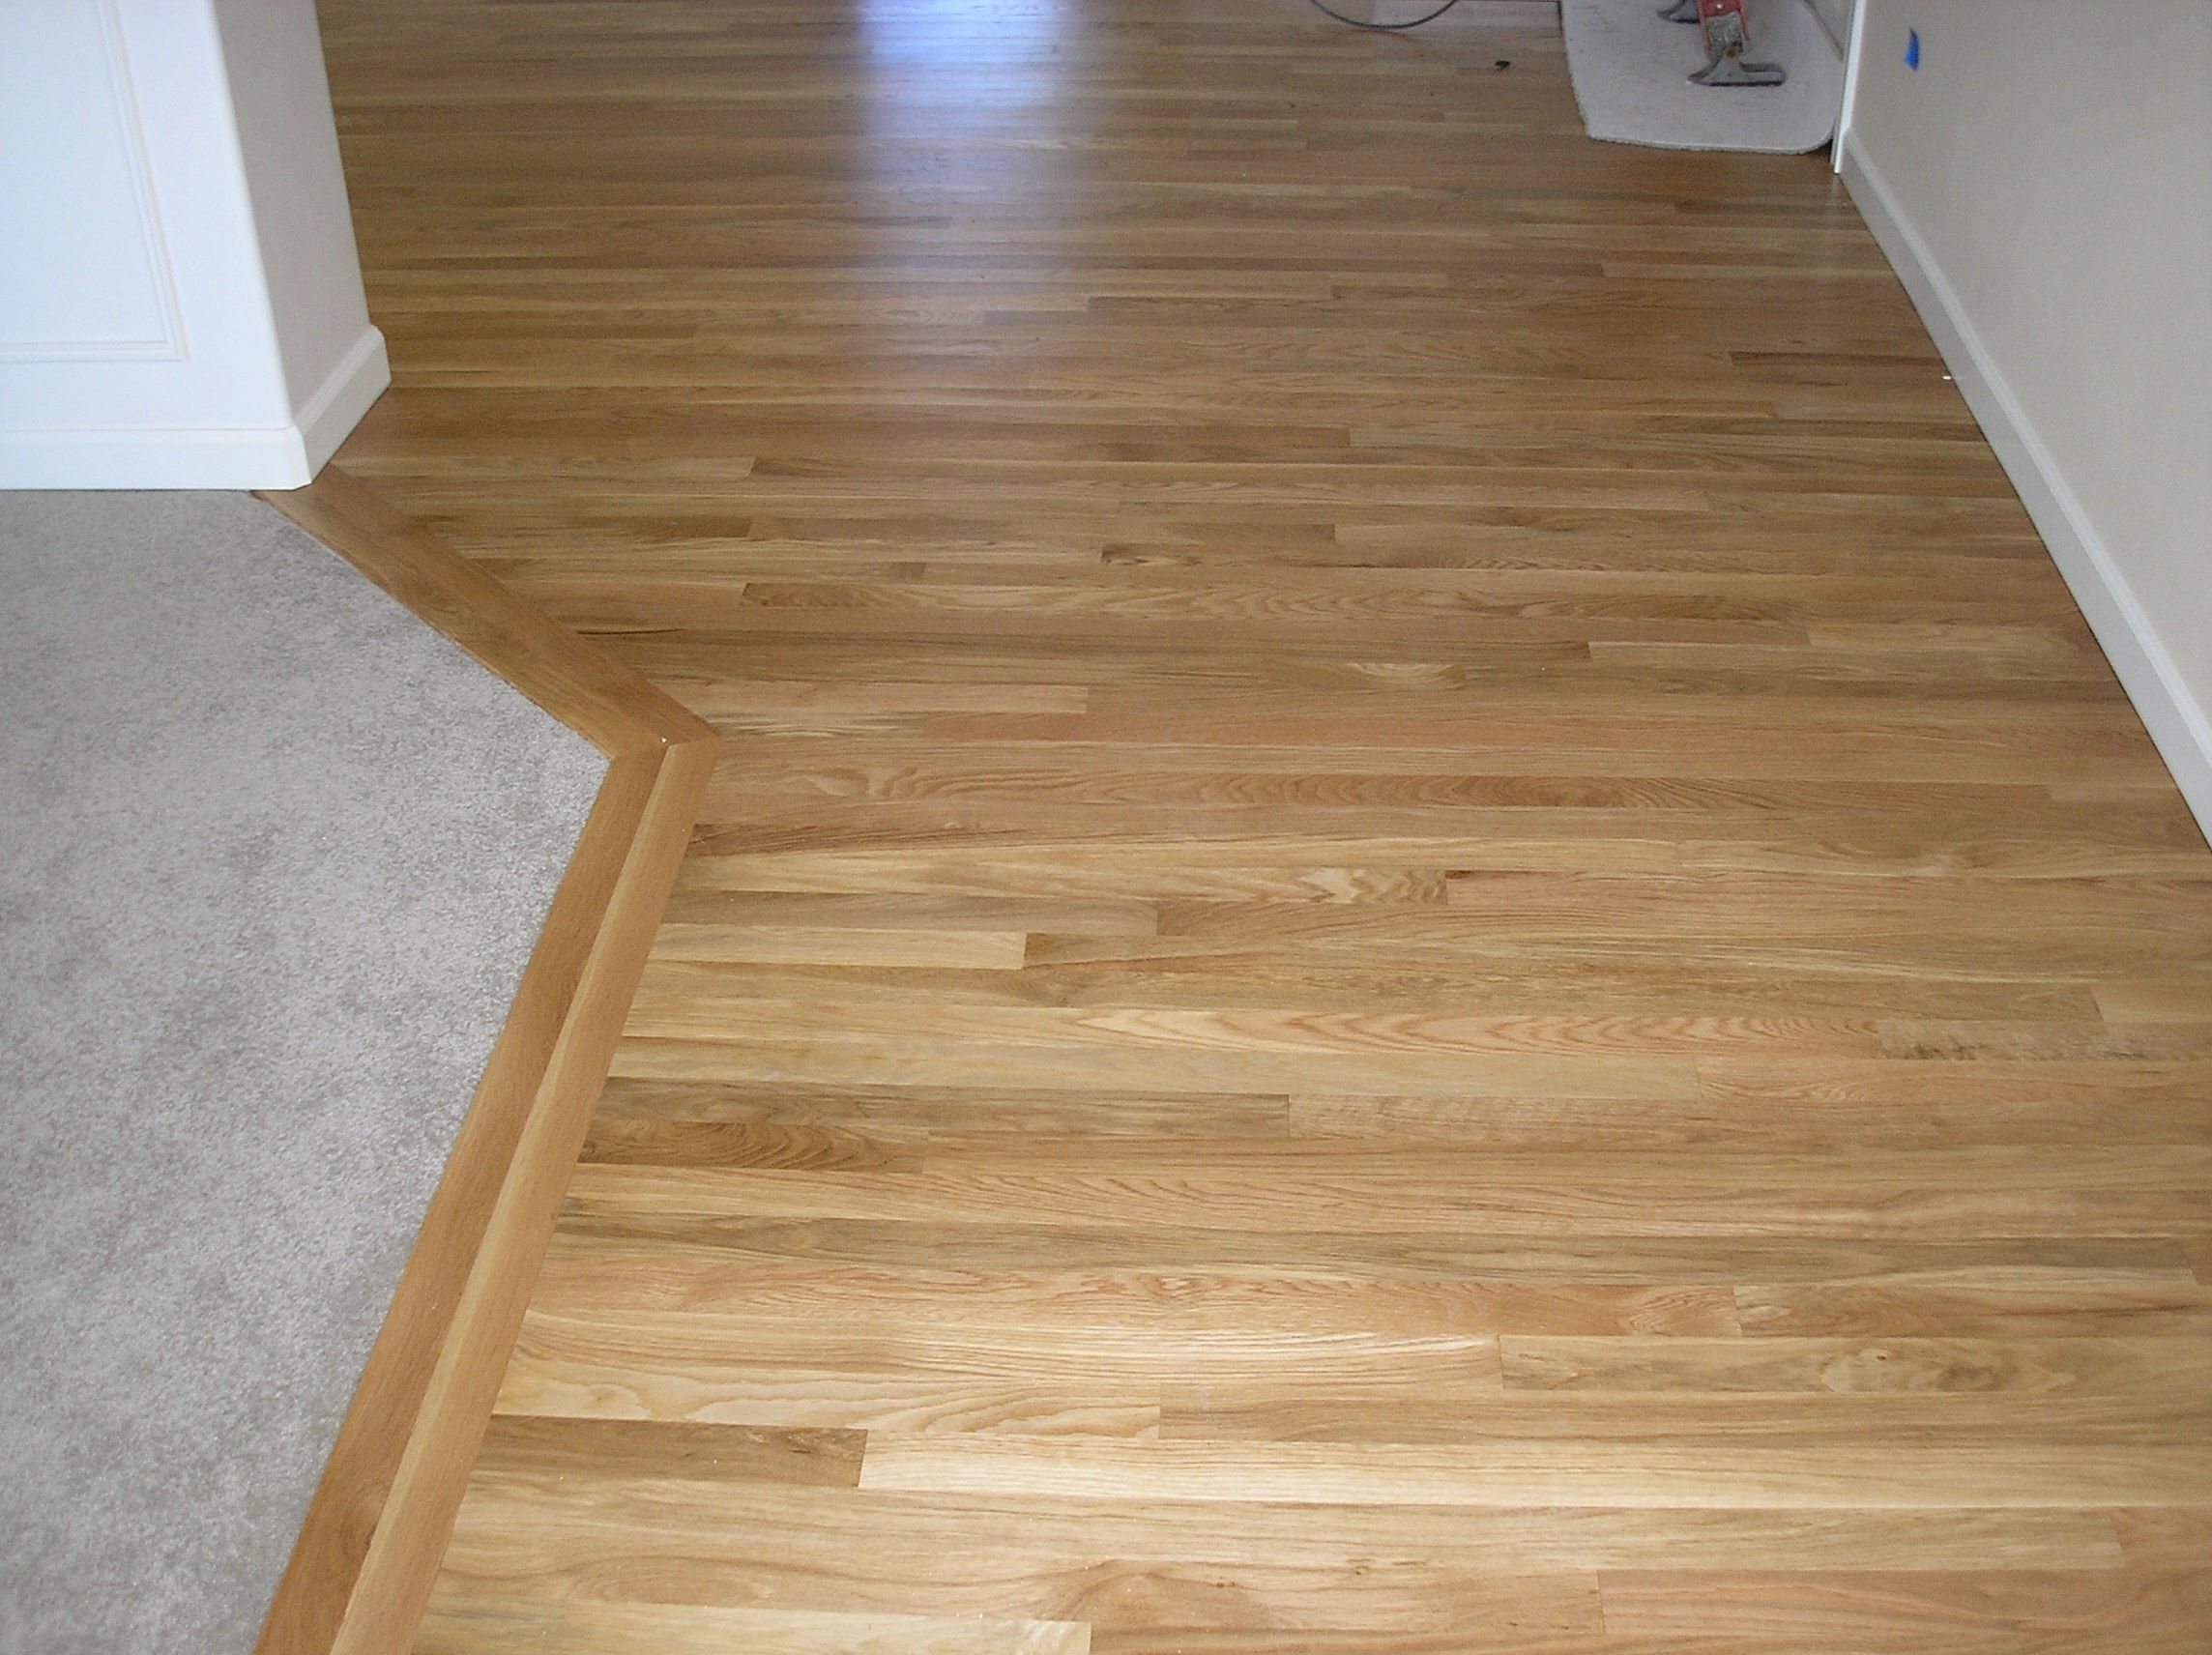 Wood Flooring Entry Ideas (With images) Hardwood floors